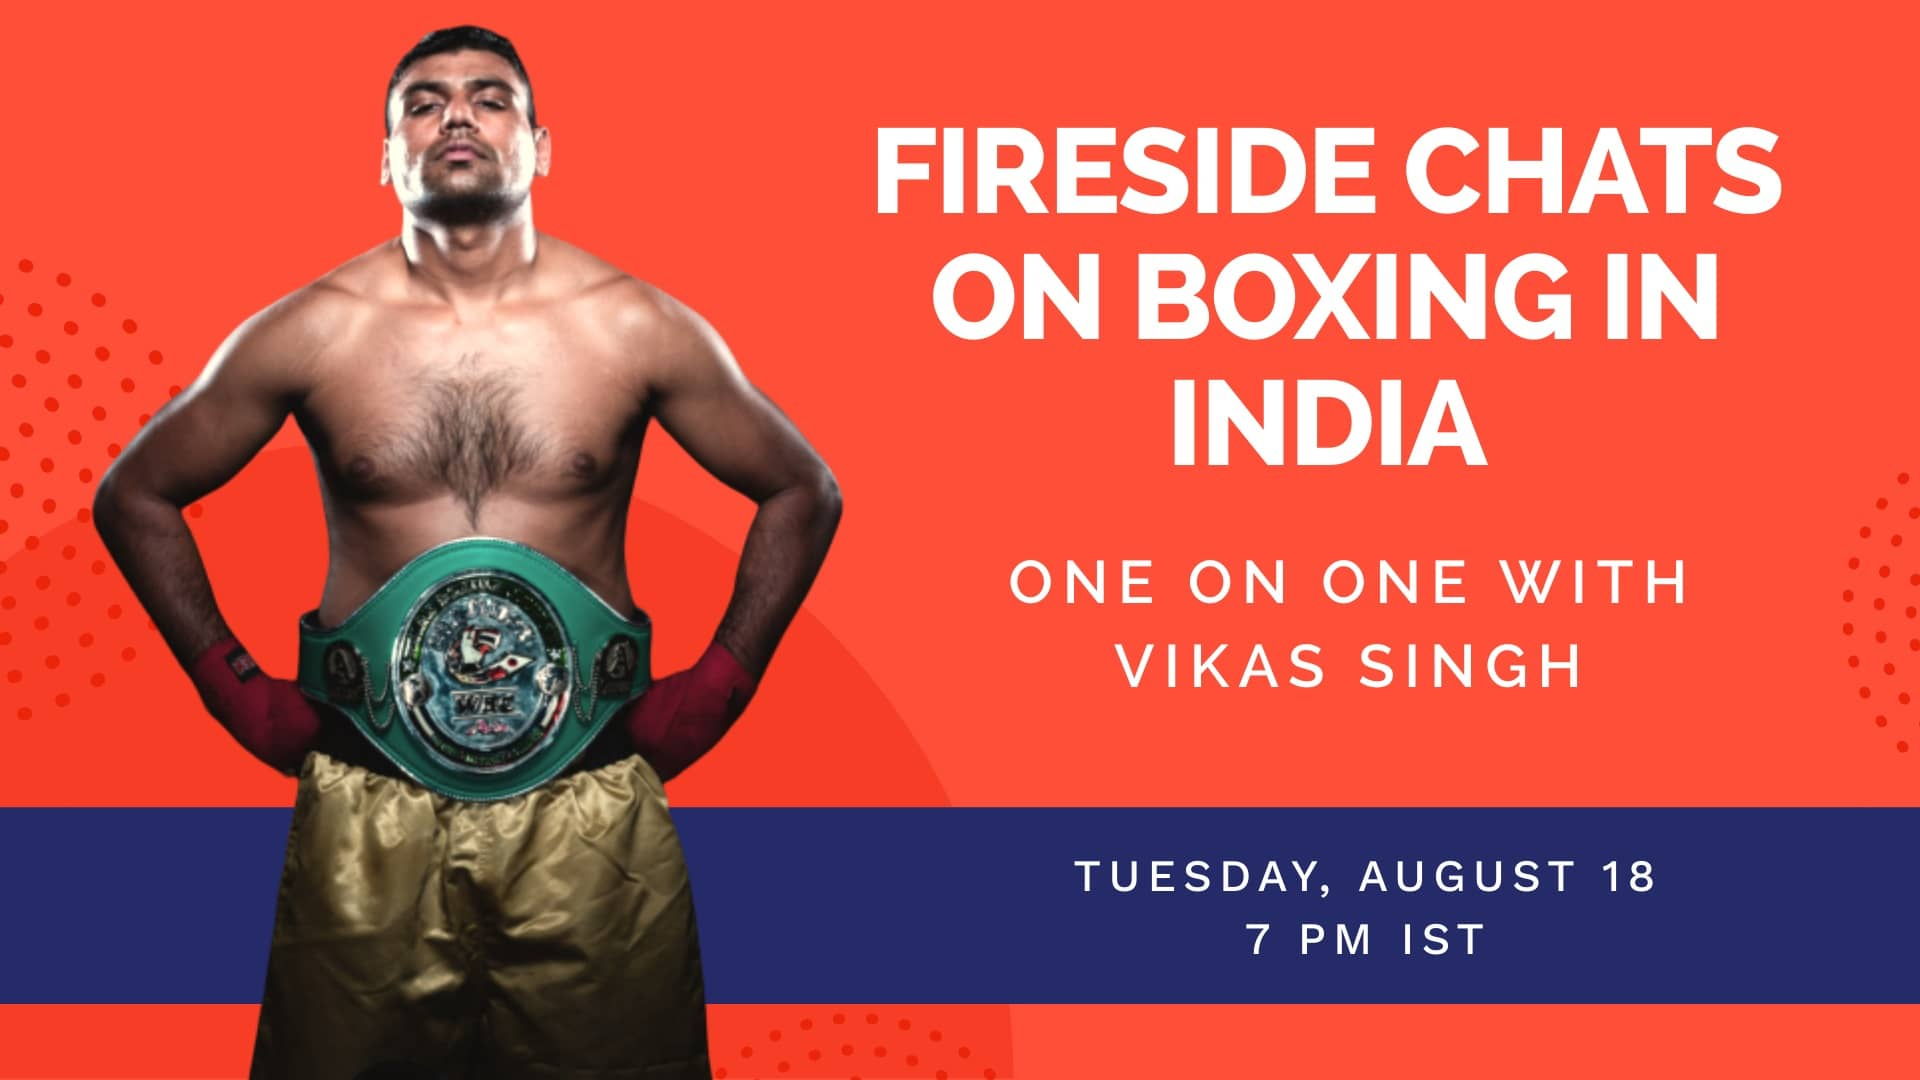 Fireside-Chats-on-Boxing-in-India-Vikas-Singh-Video